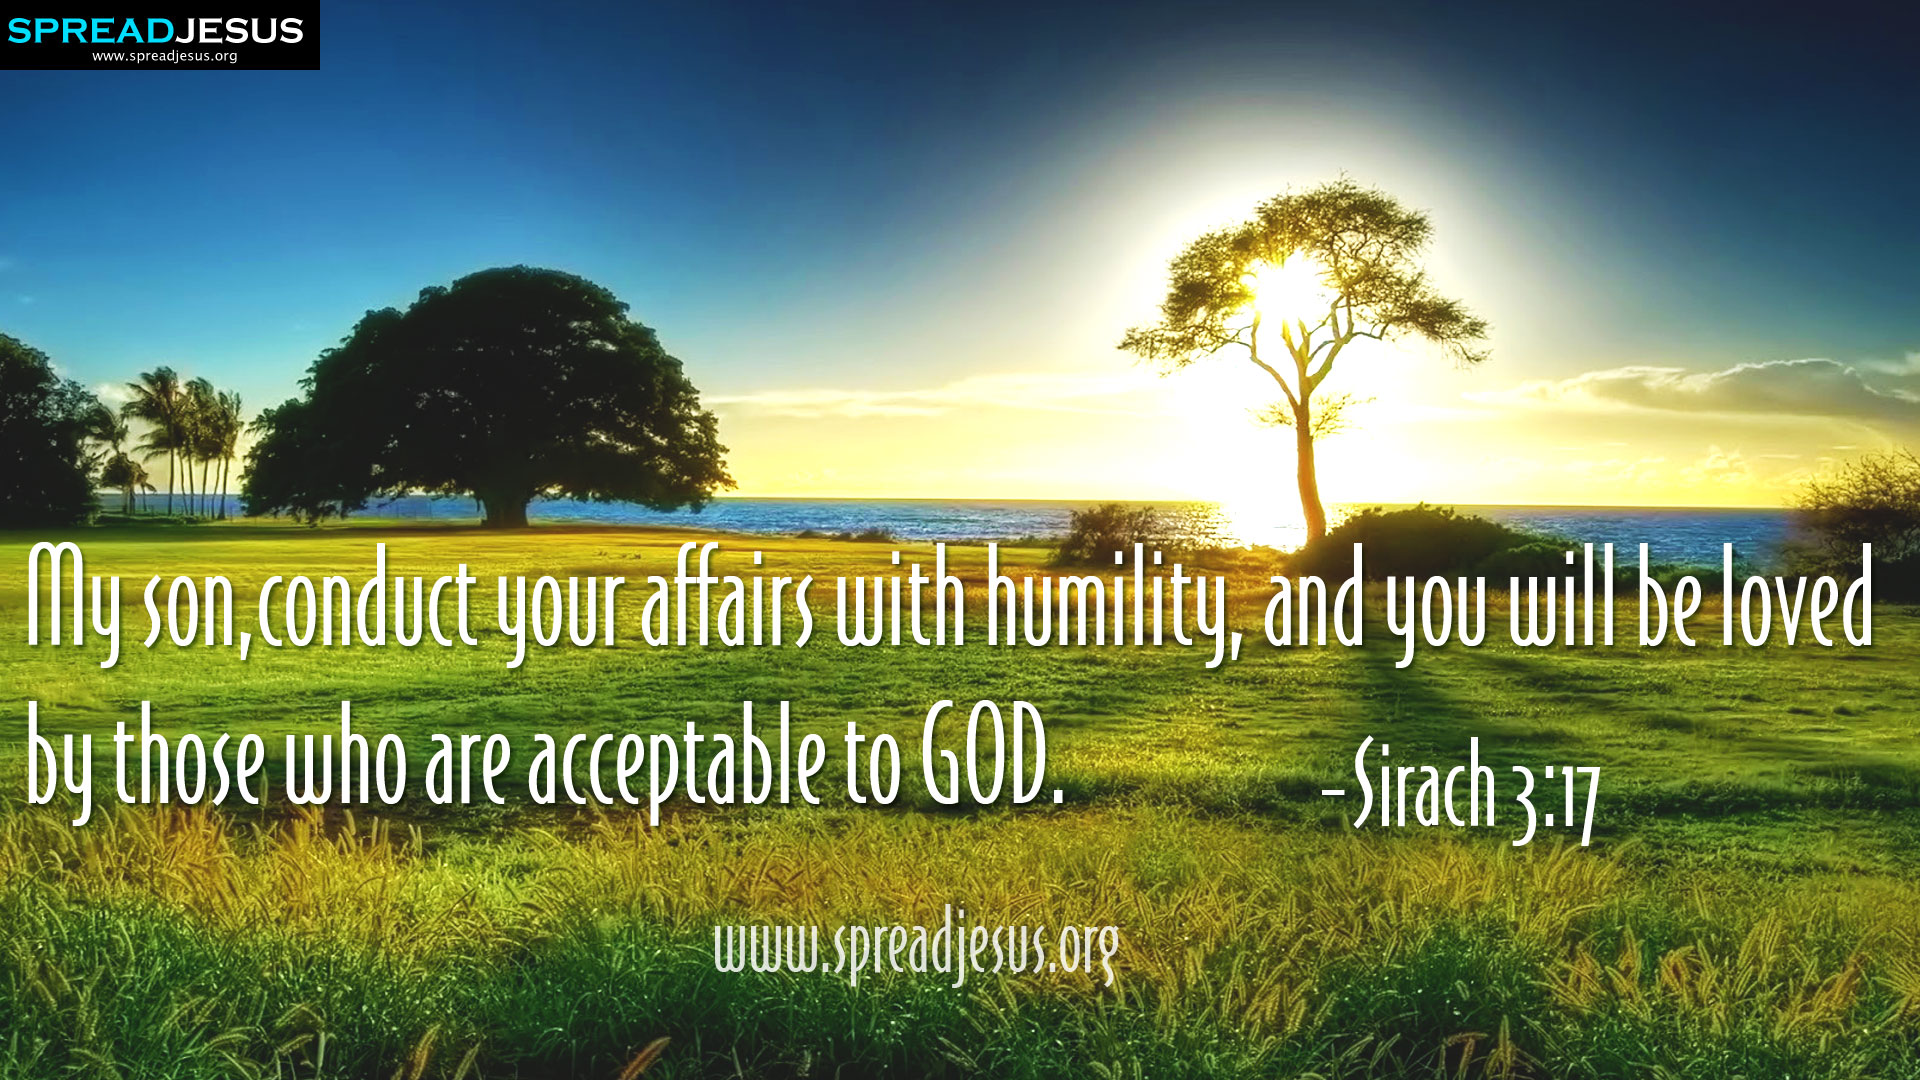 CHRISTIAN HD WALLPAPERS: HOLY BIBLE QUOTES : Sirach 3:17-My son,conduct your affairs with humility, and you will be loved by those who are acceptable to GOD. -Sirach 3:17